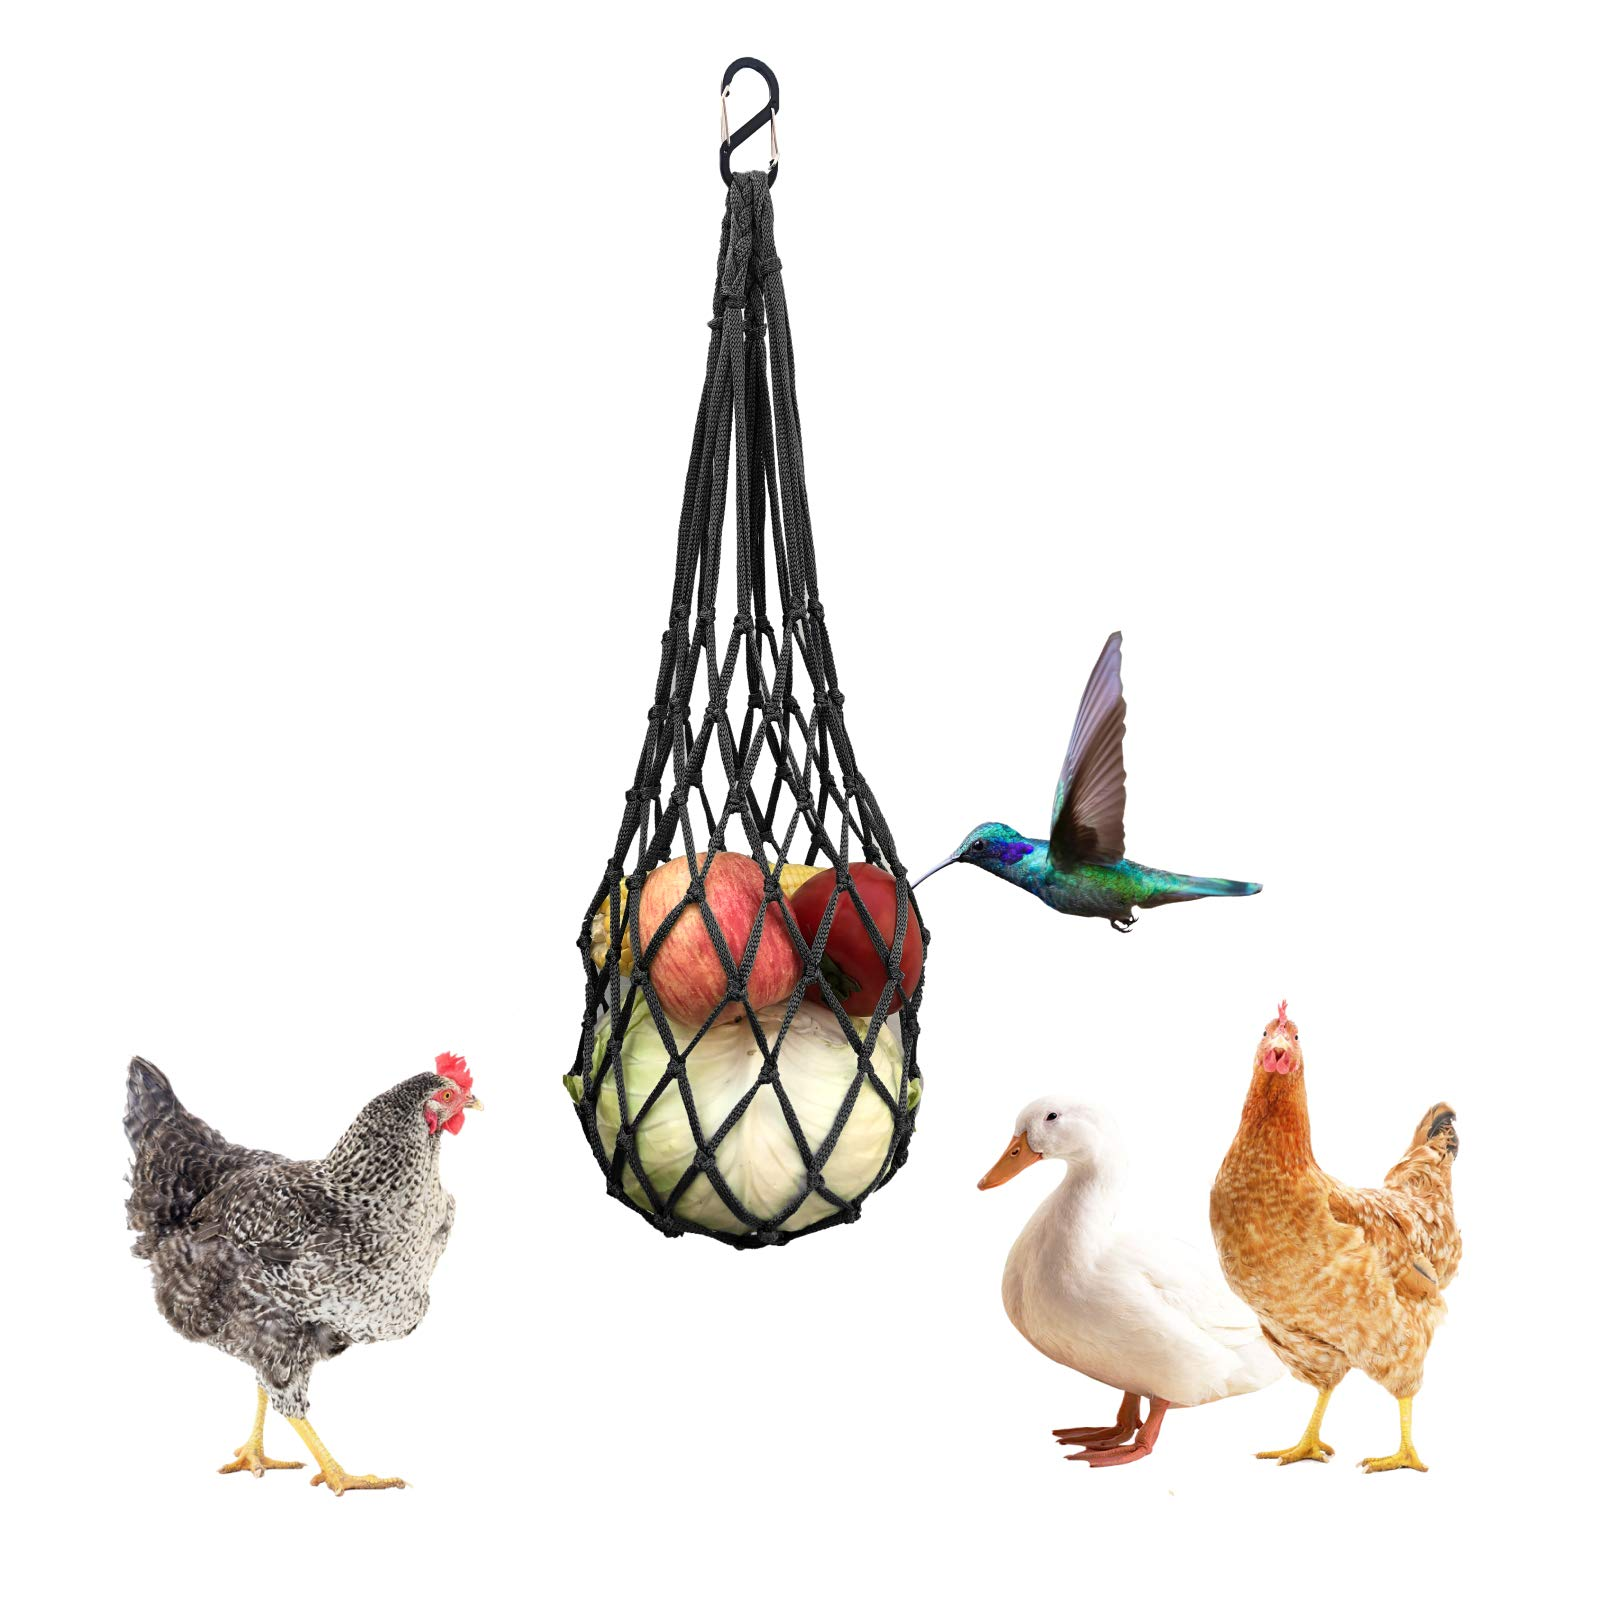 Chicken Vegetable String Bag , Poultry Fruit Holder Chicken Cabbage Feeder Treat Feeding Tool with Hook for Hens Chicken Coop Toy for Hen Goose Duck Large Birds (Black)